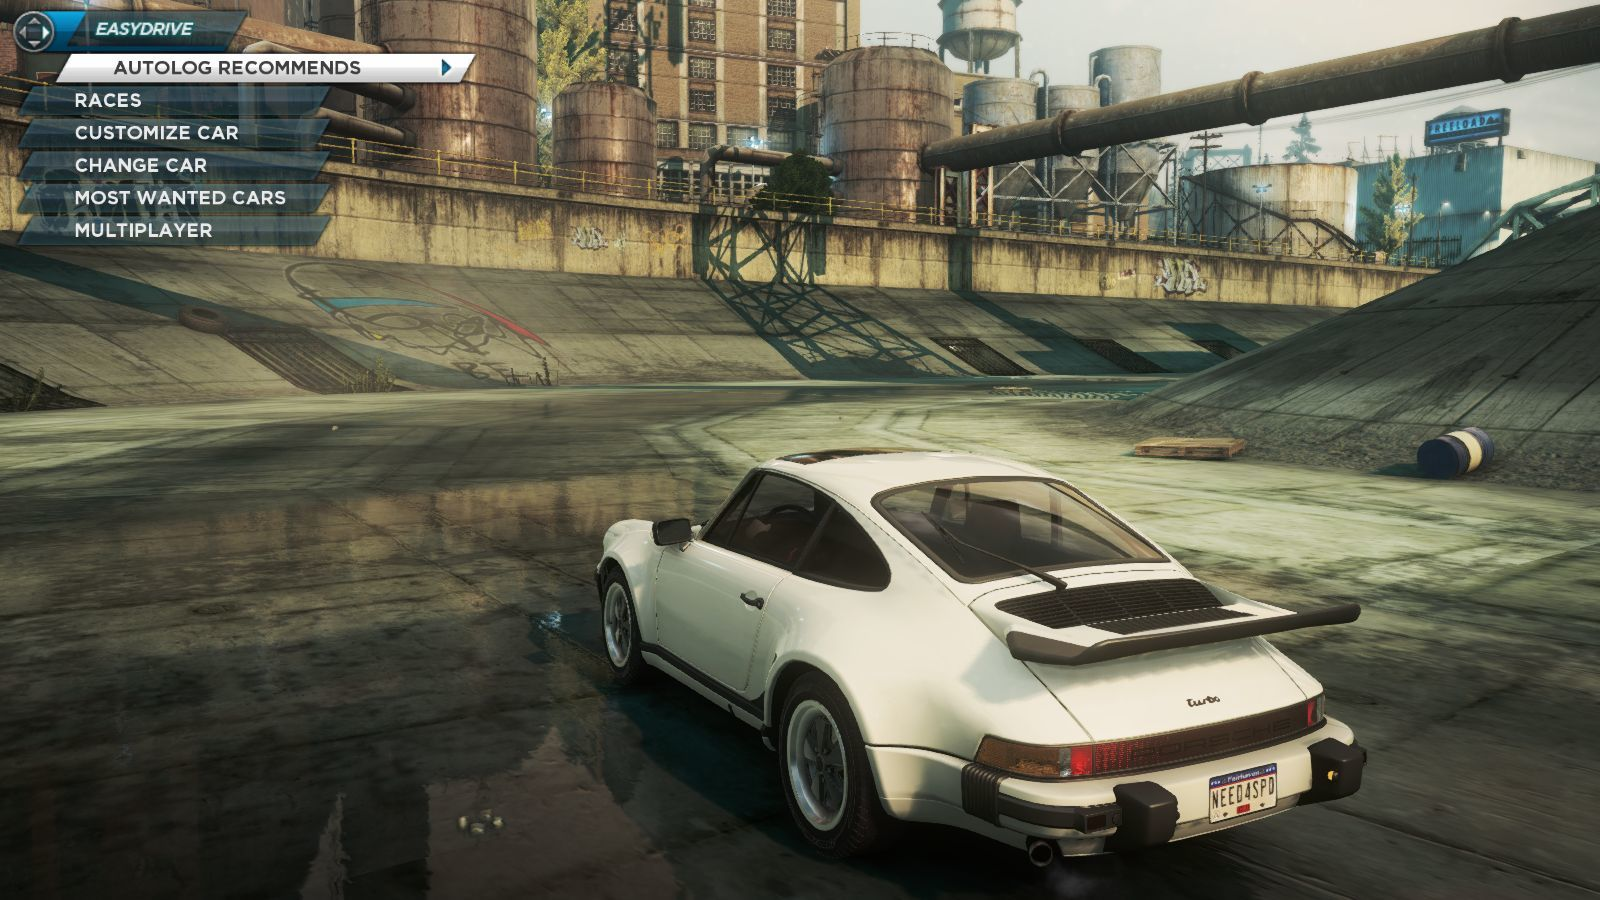 https://www.mobygames.com/images/shots/l/604215-need-for-speed-most-wanted-windows-screenshot-no-pre-game.jpg